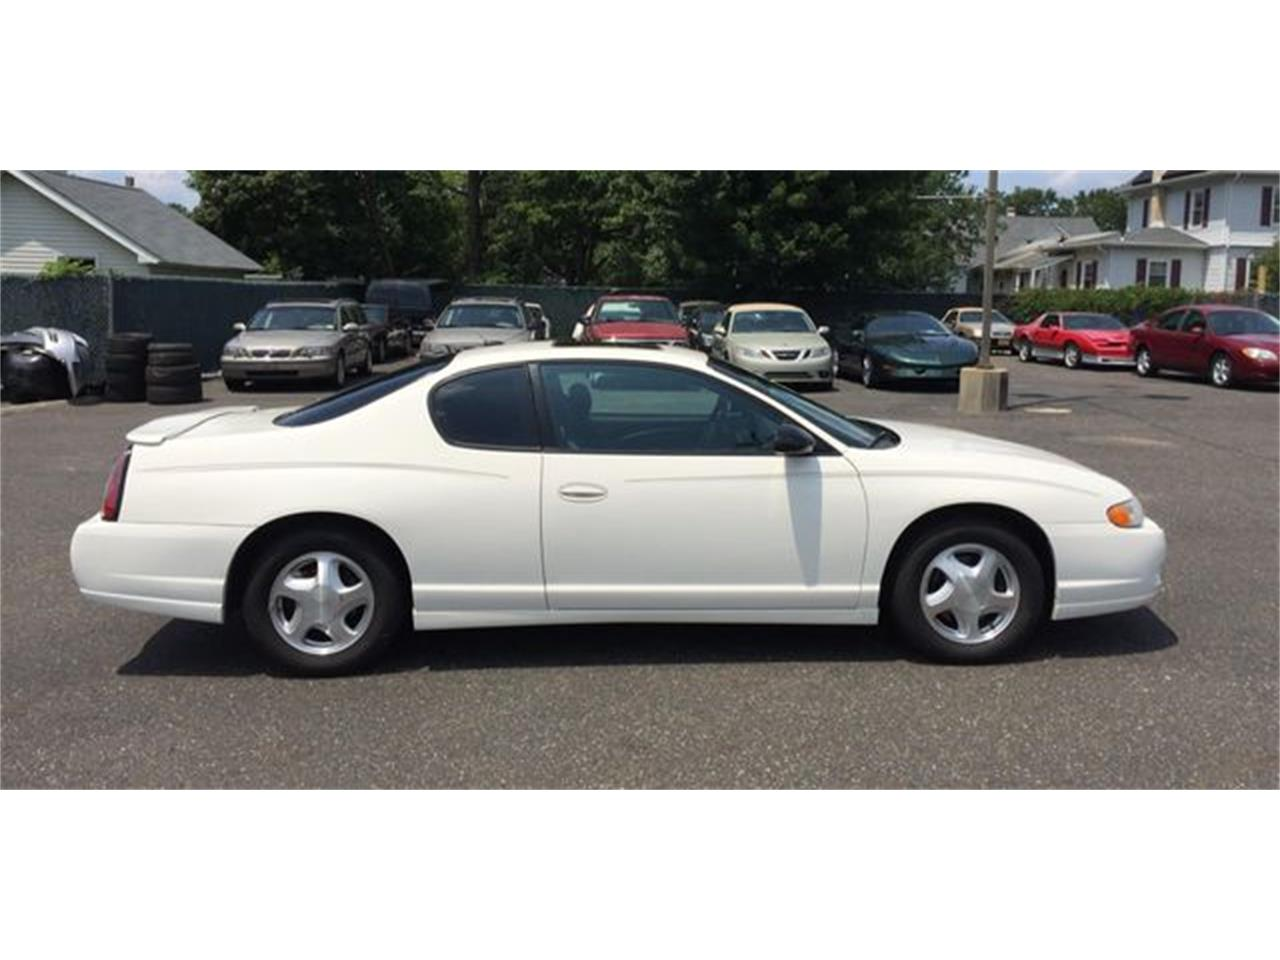 2005 Chevrolet Monte Carlo for sale in Woodbury, NJ – photo 11